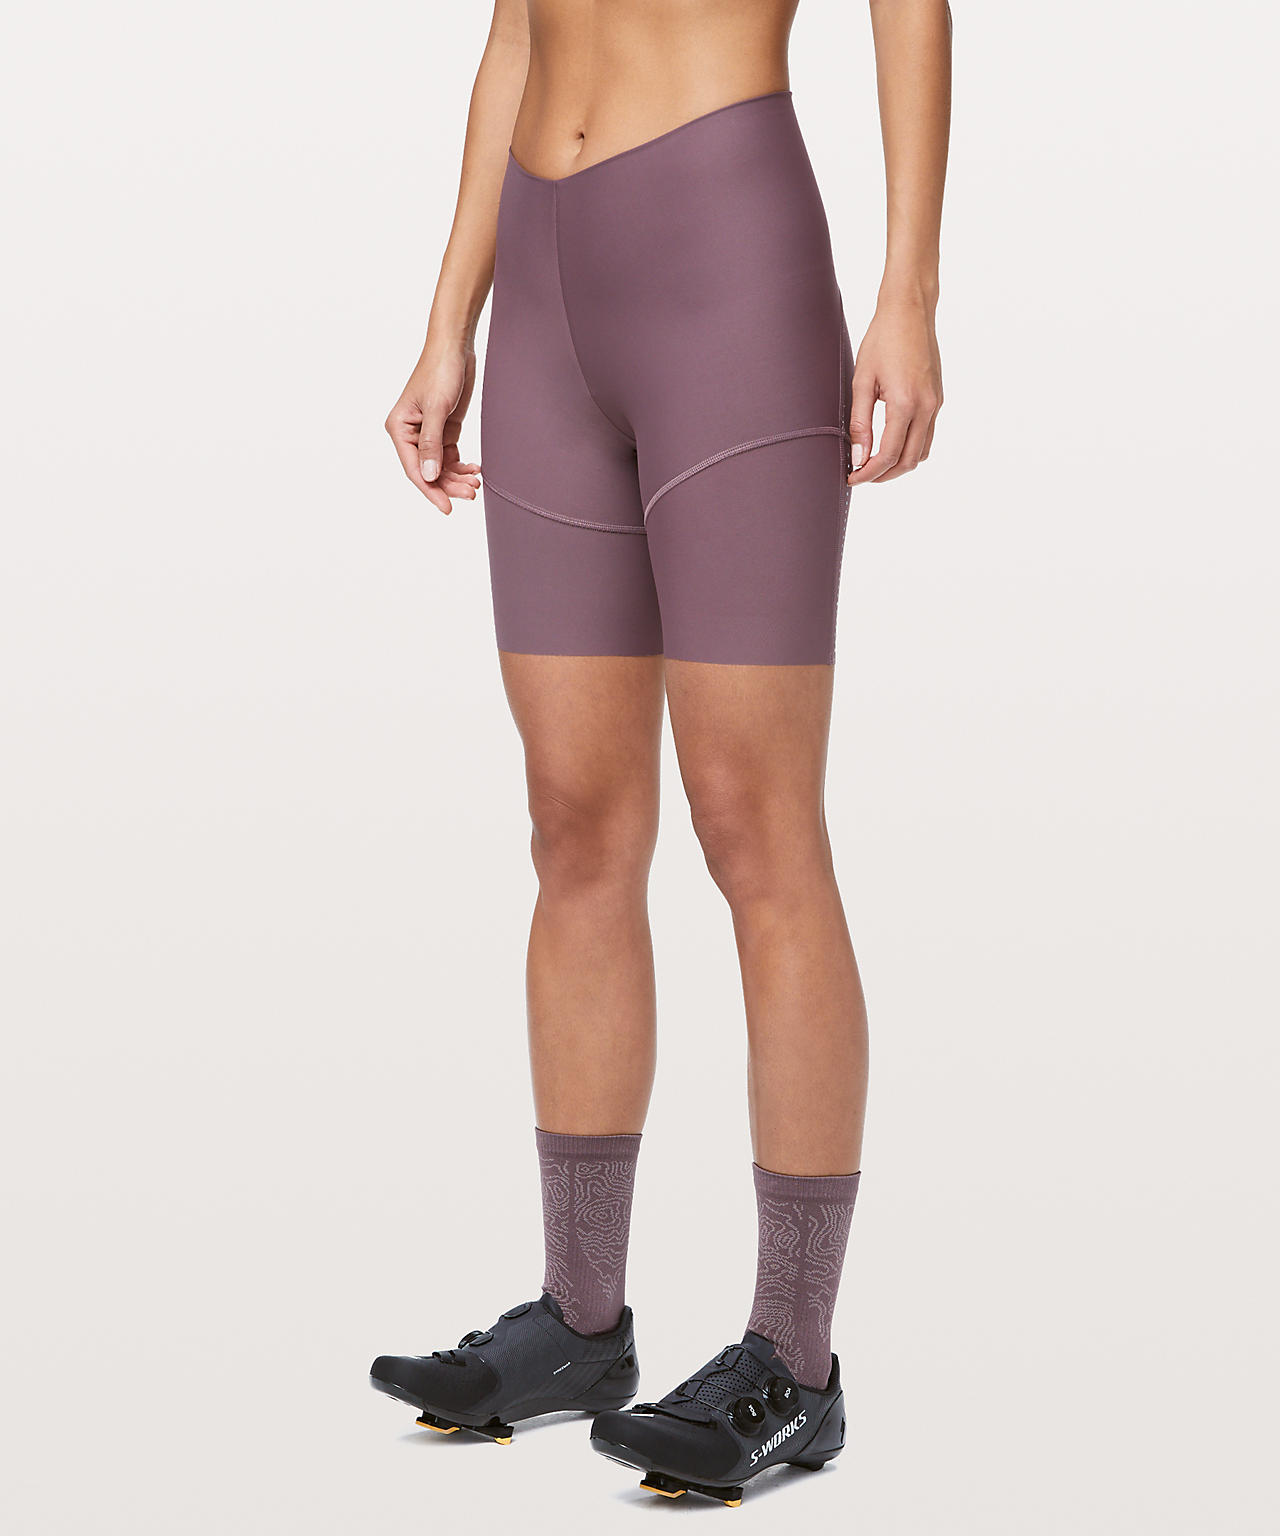 City To Summit Light Cycling Short